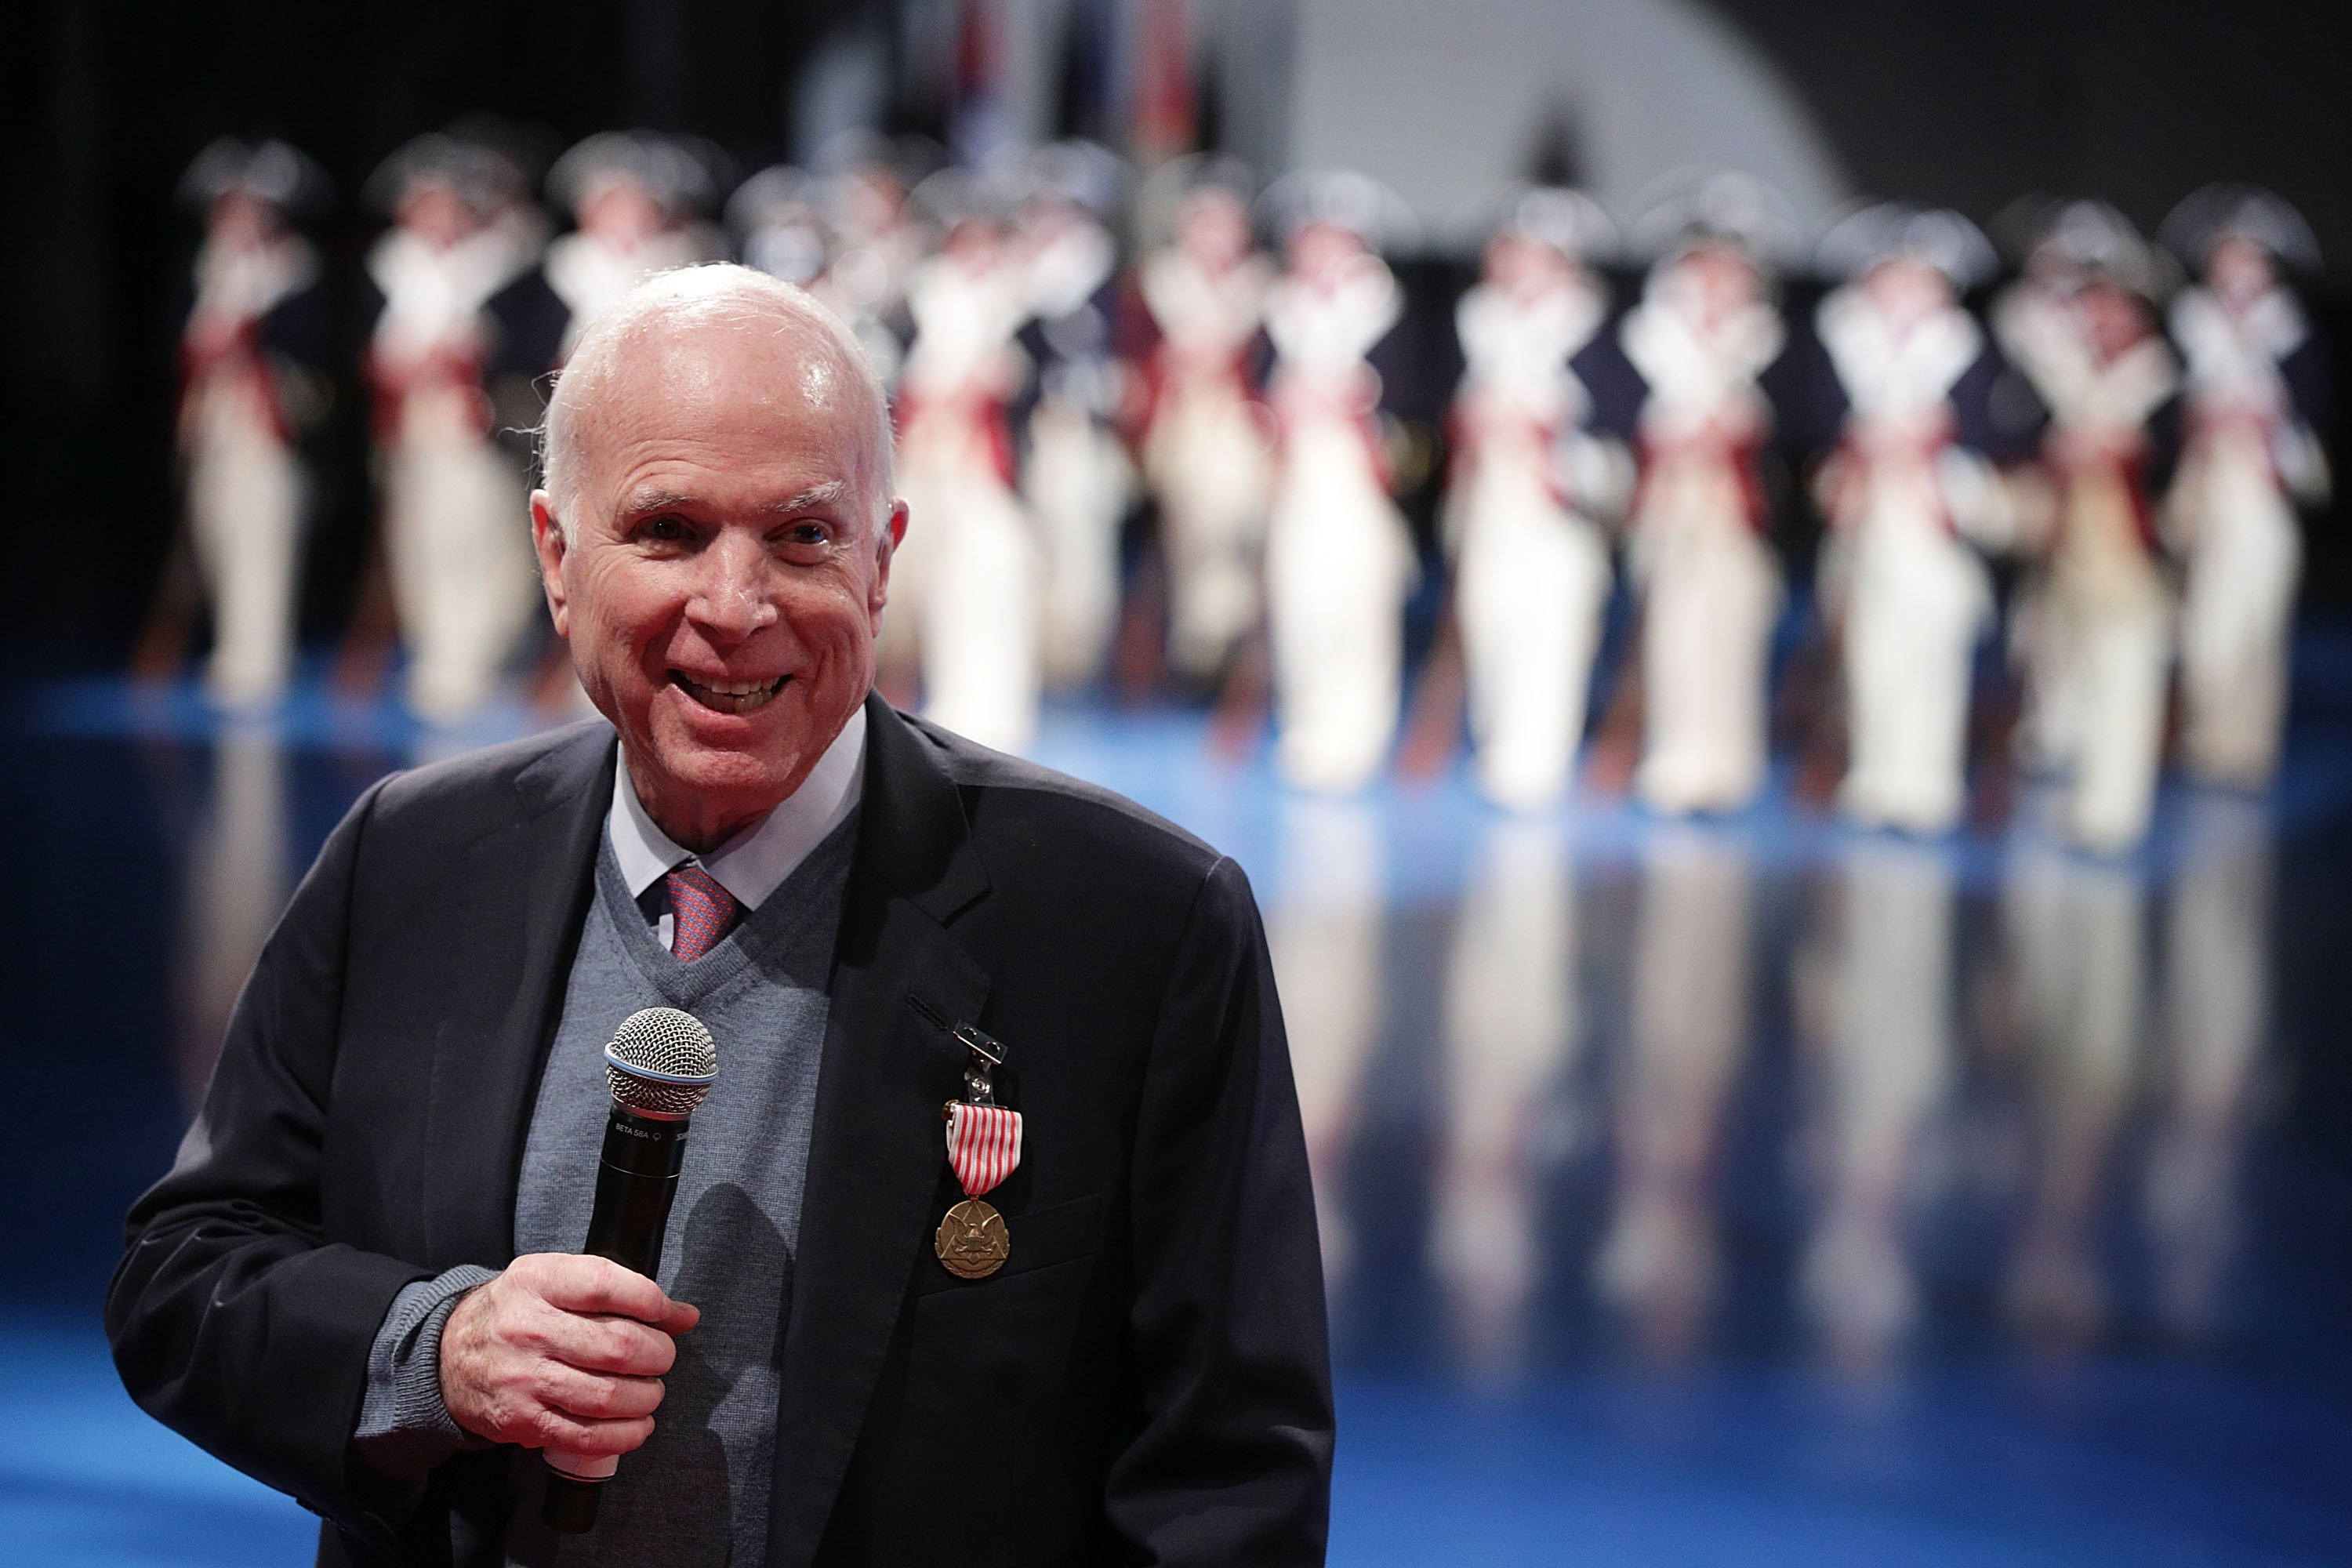 Late sen. John McCain after receiving a Civilian Service Medal. | Source: Getty Images